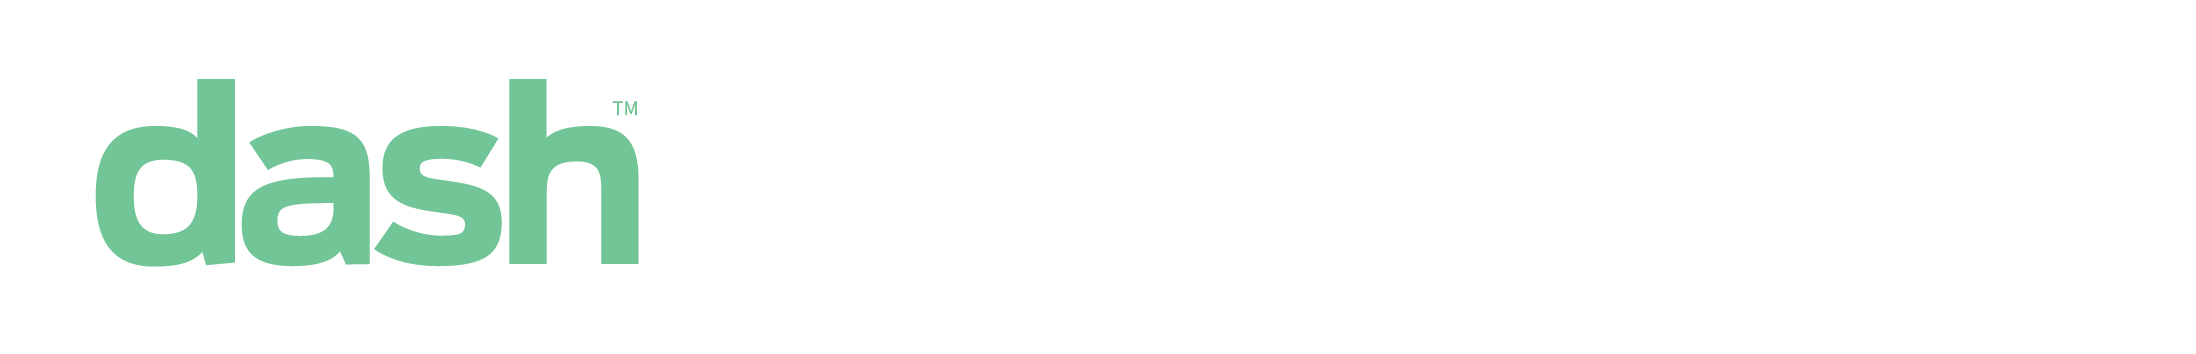 dash disbursement logo - green